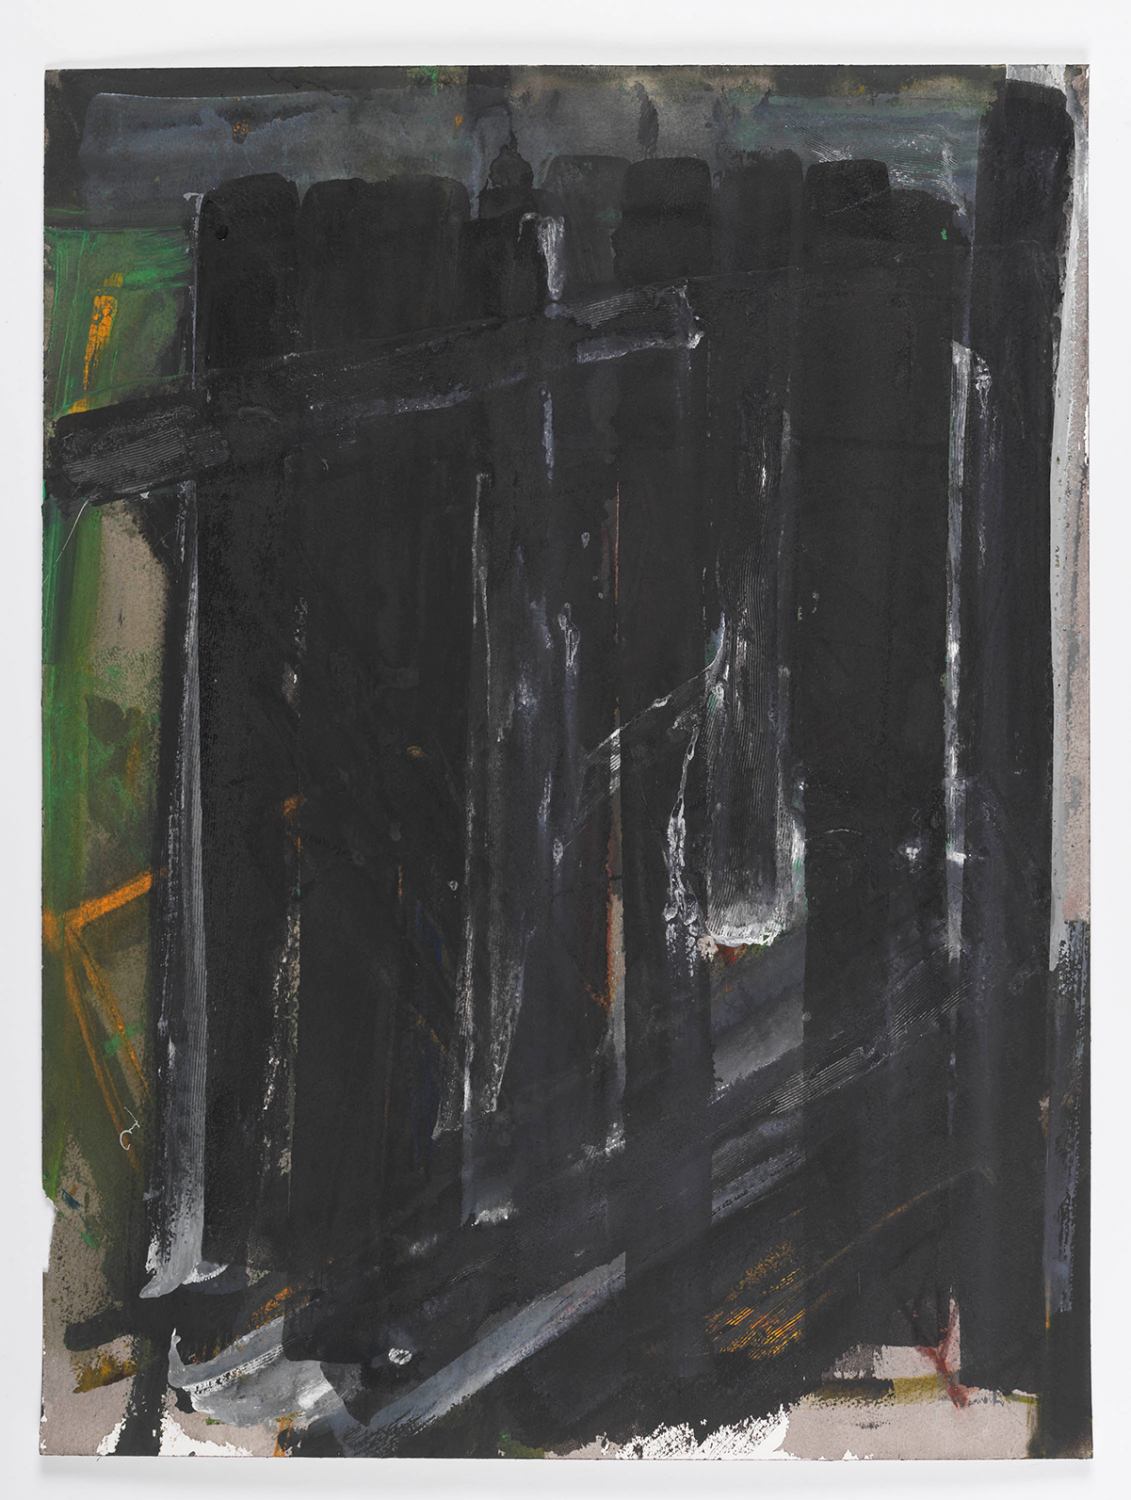 """Densely painted, """"Untitled"""" by Louise Fishman pairs vibrant color (green field and orange drawn lines) with a black grid with streaks of white. Tempera, watercolor, and ink are all used."""